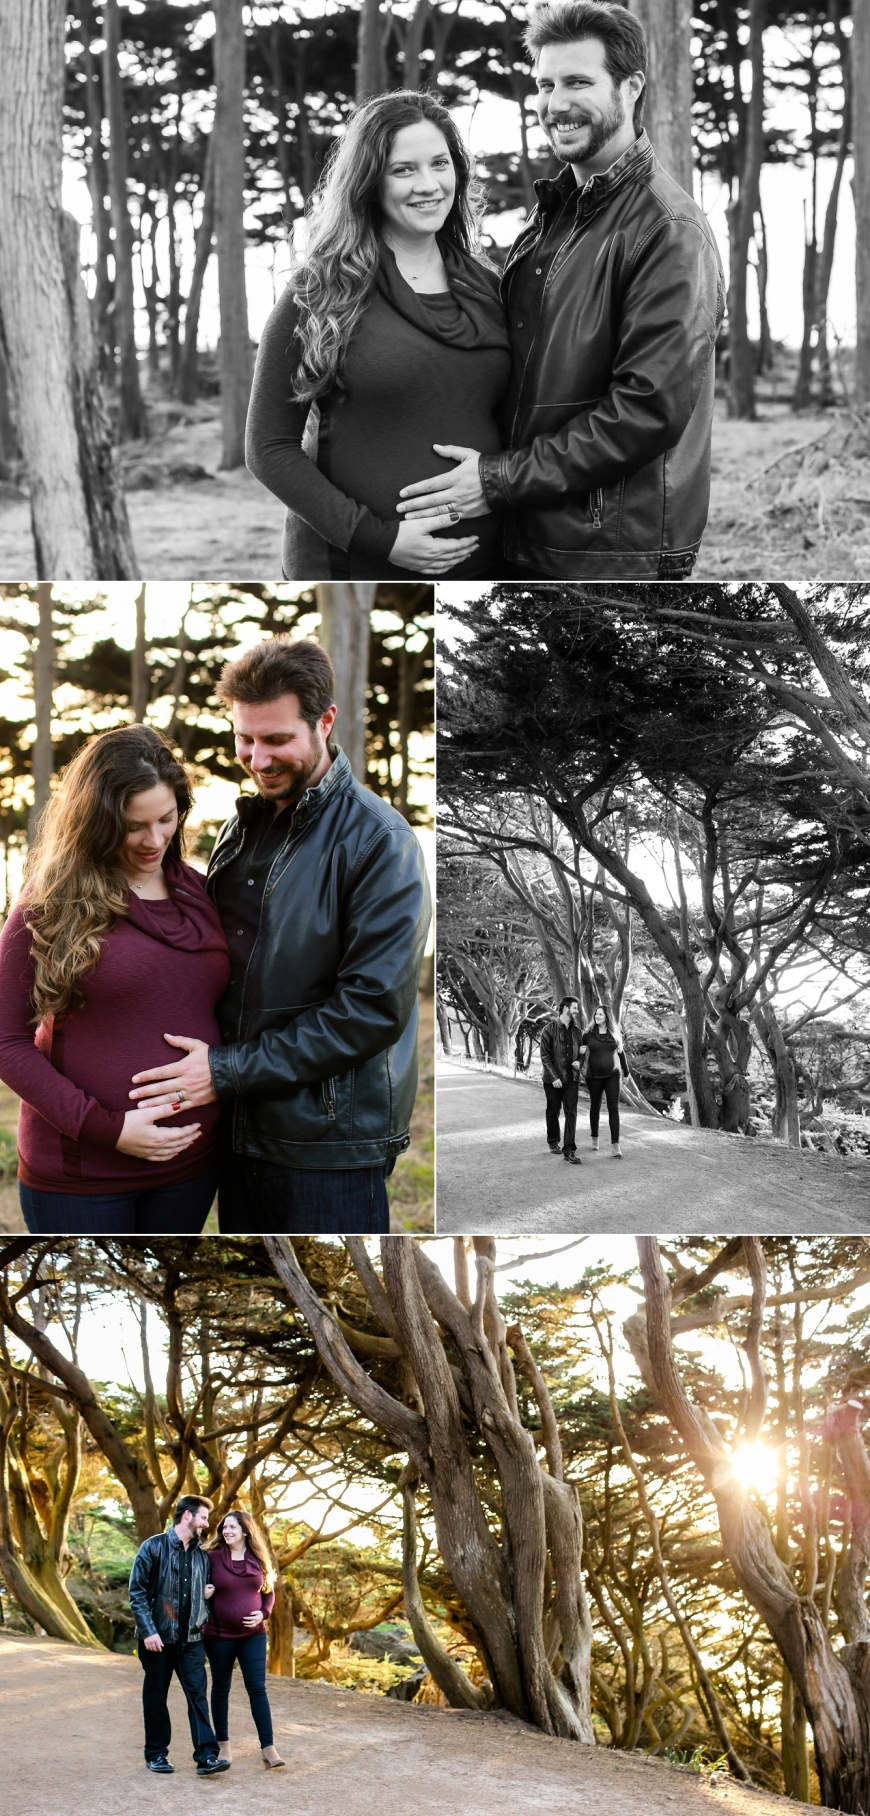 Land's-End-San-Francisco-Maternity-Photographer_1001.jpg